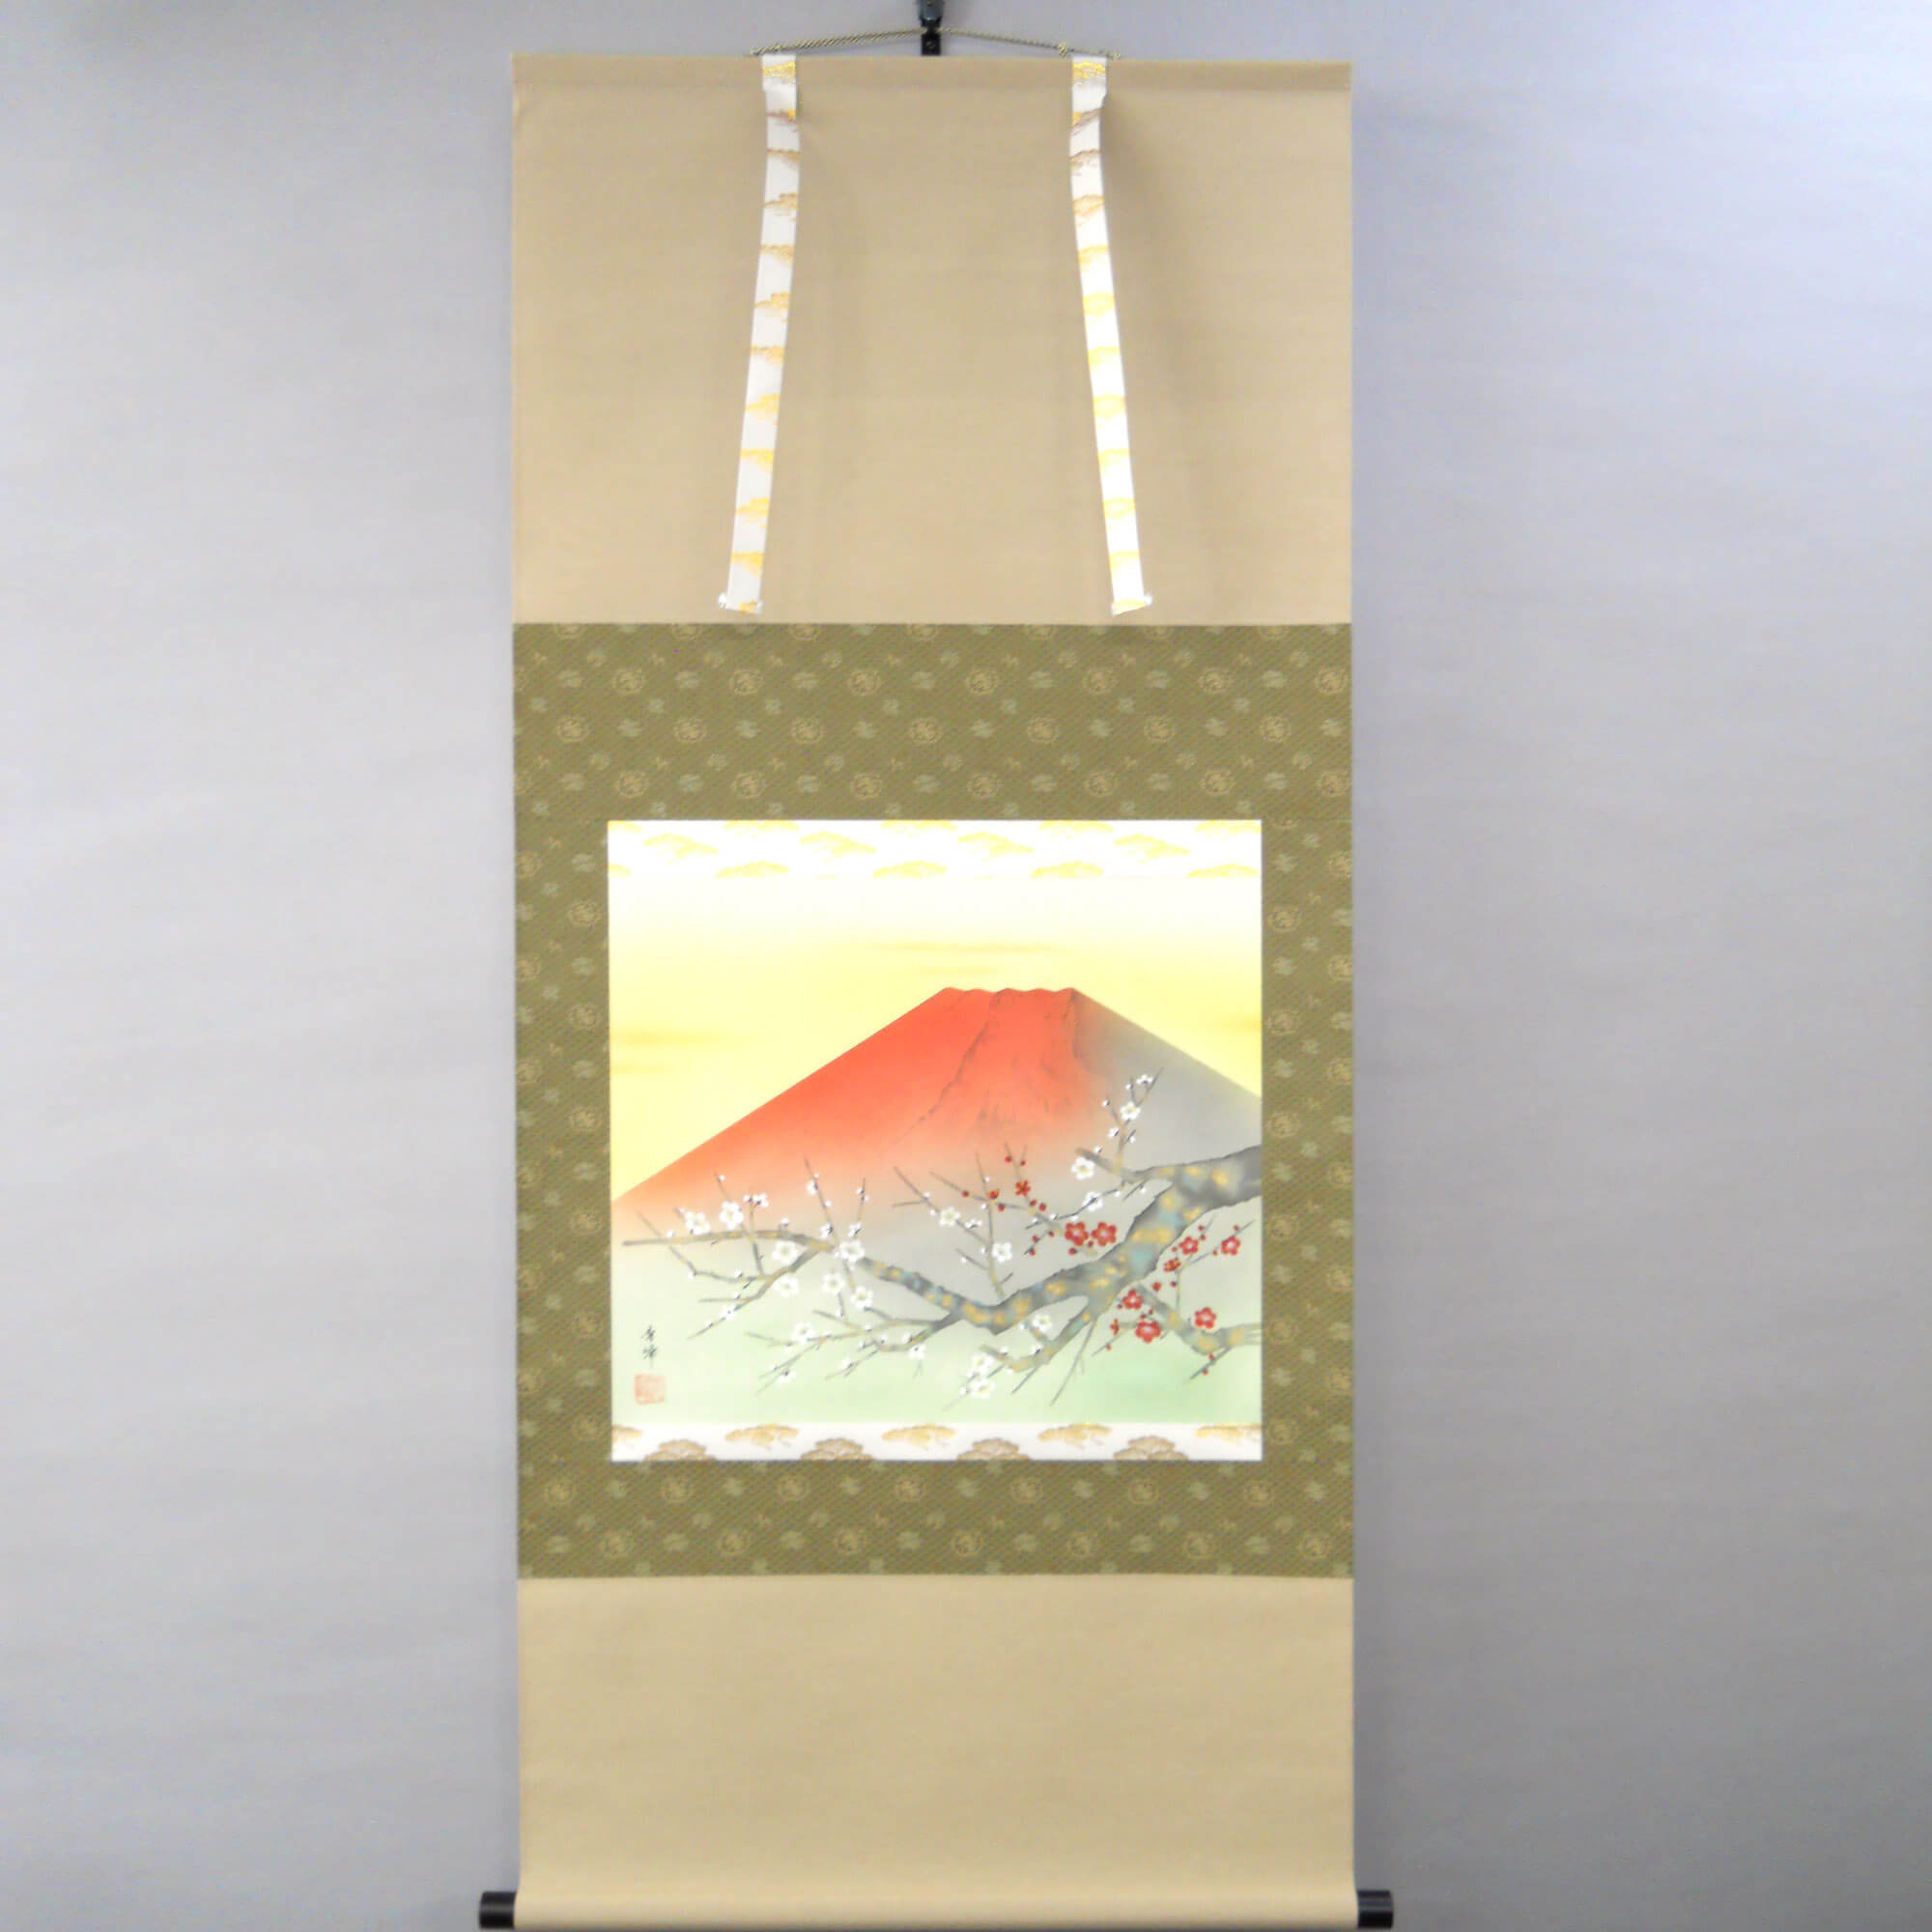 Red Mt. Fuji and Kōhaku Plum Blossoms / Shūhō Inoue